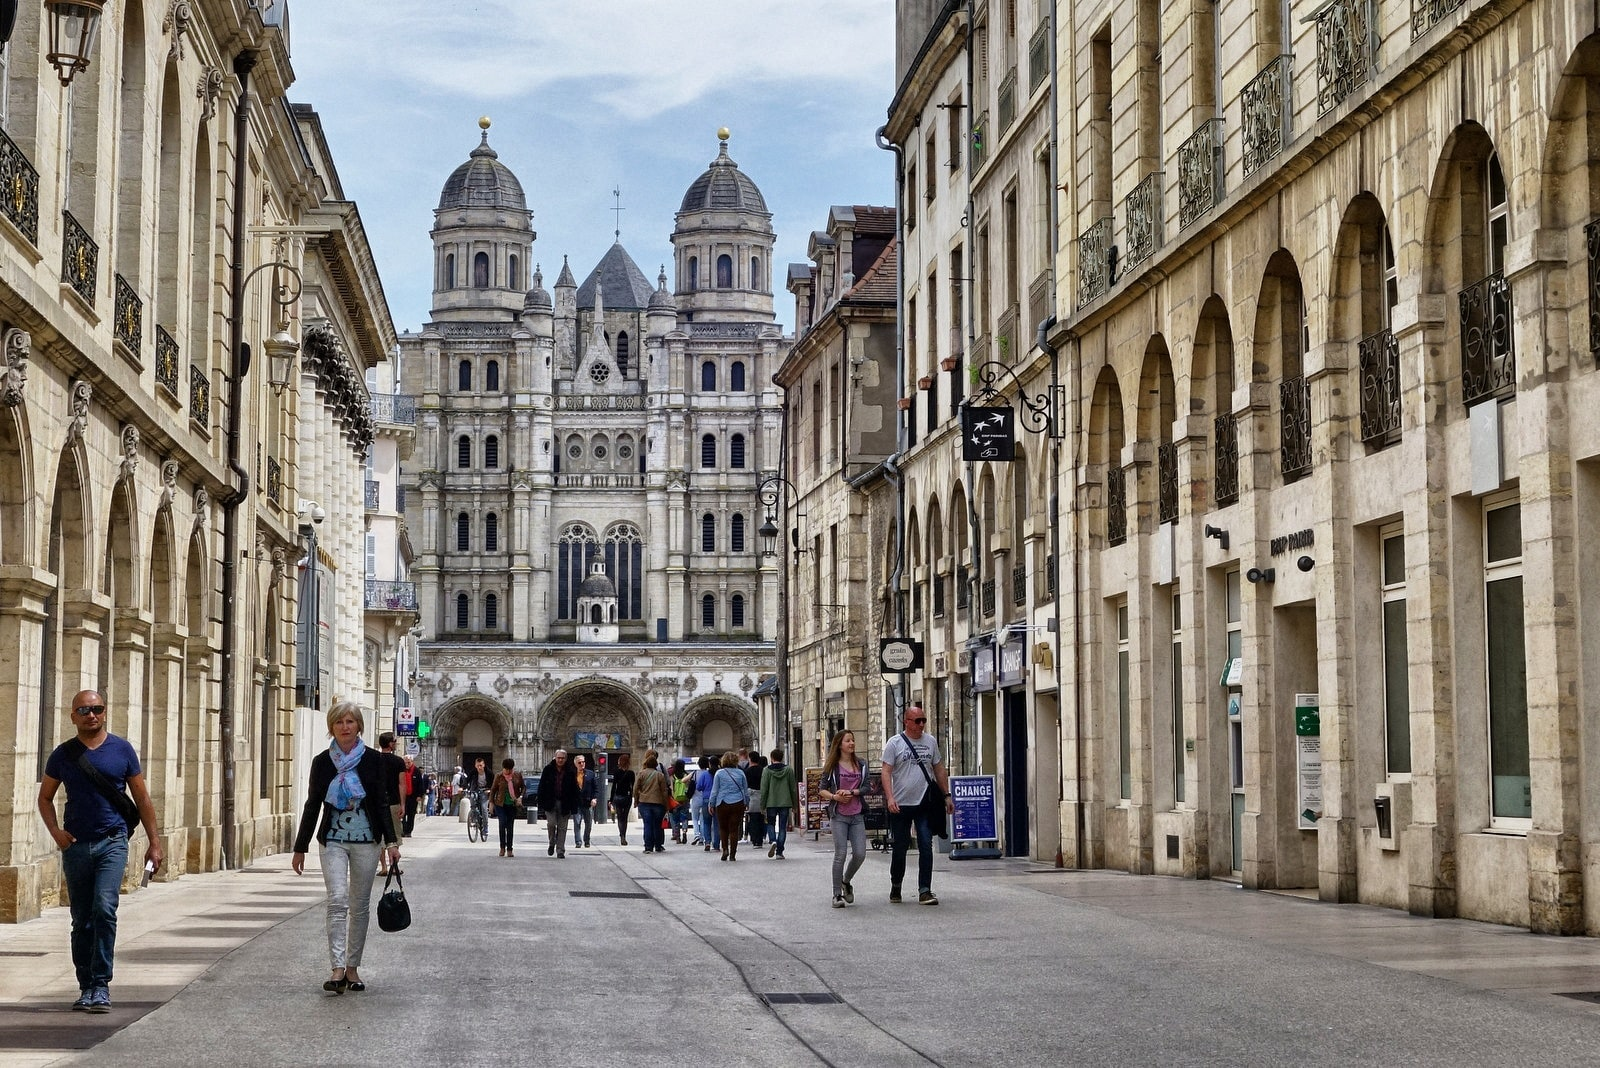 Dijon is one of the best places to visit in France